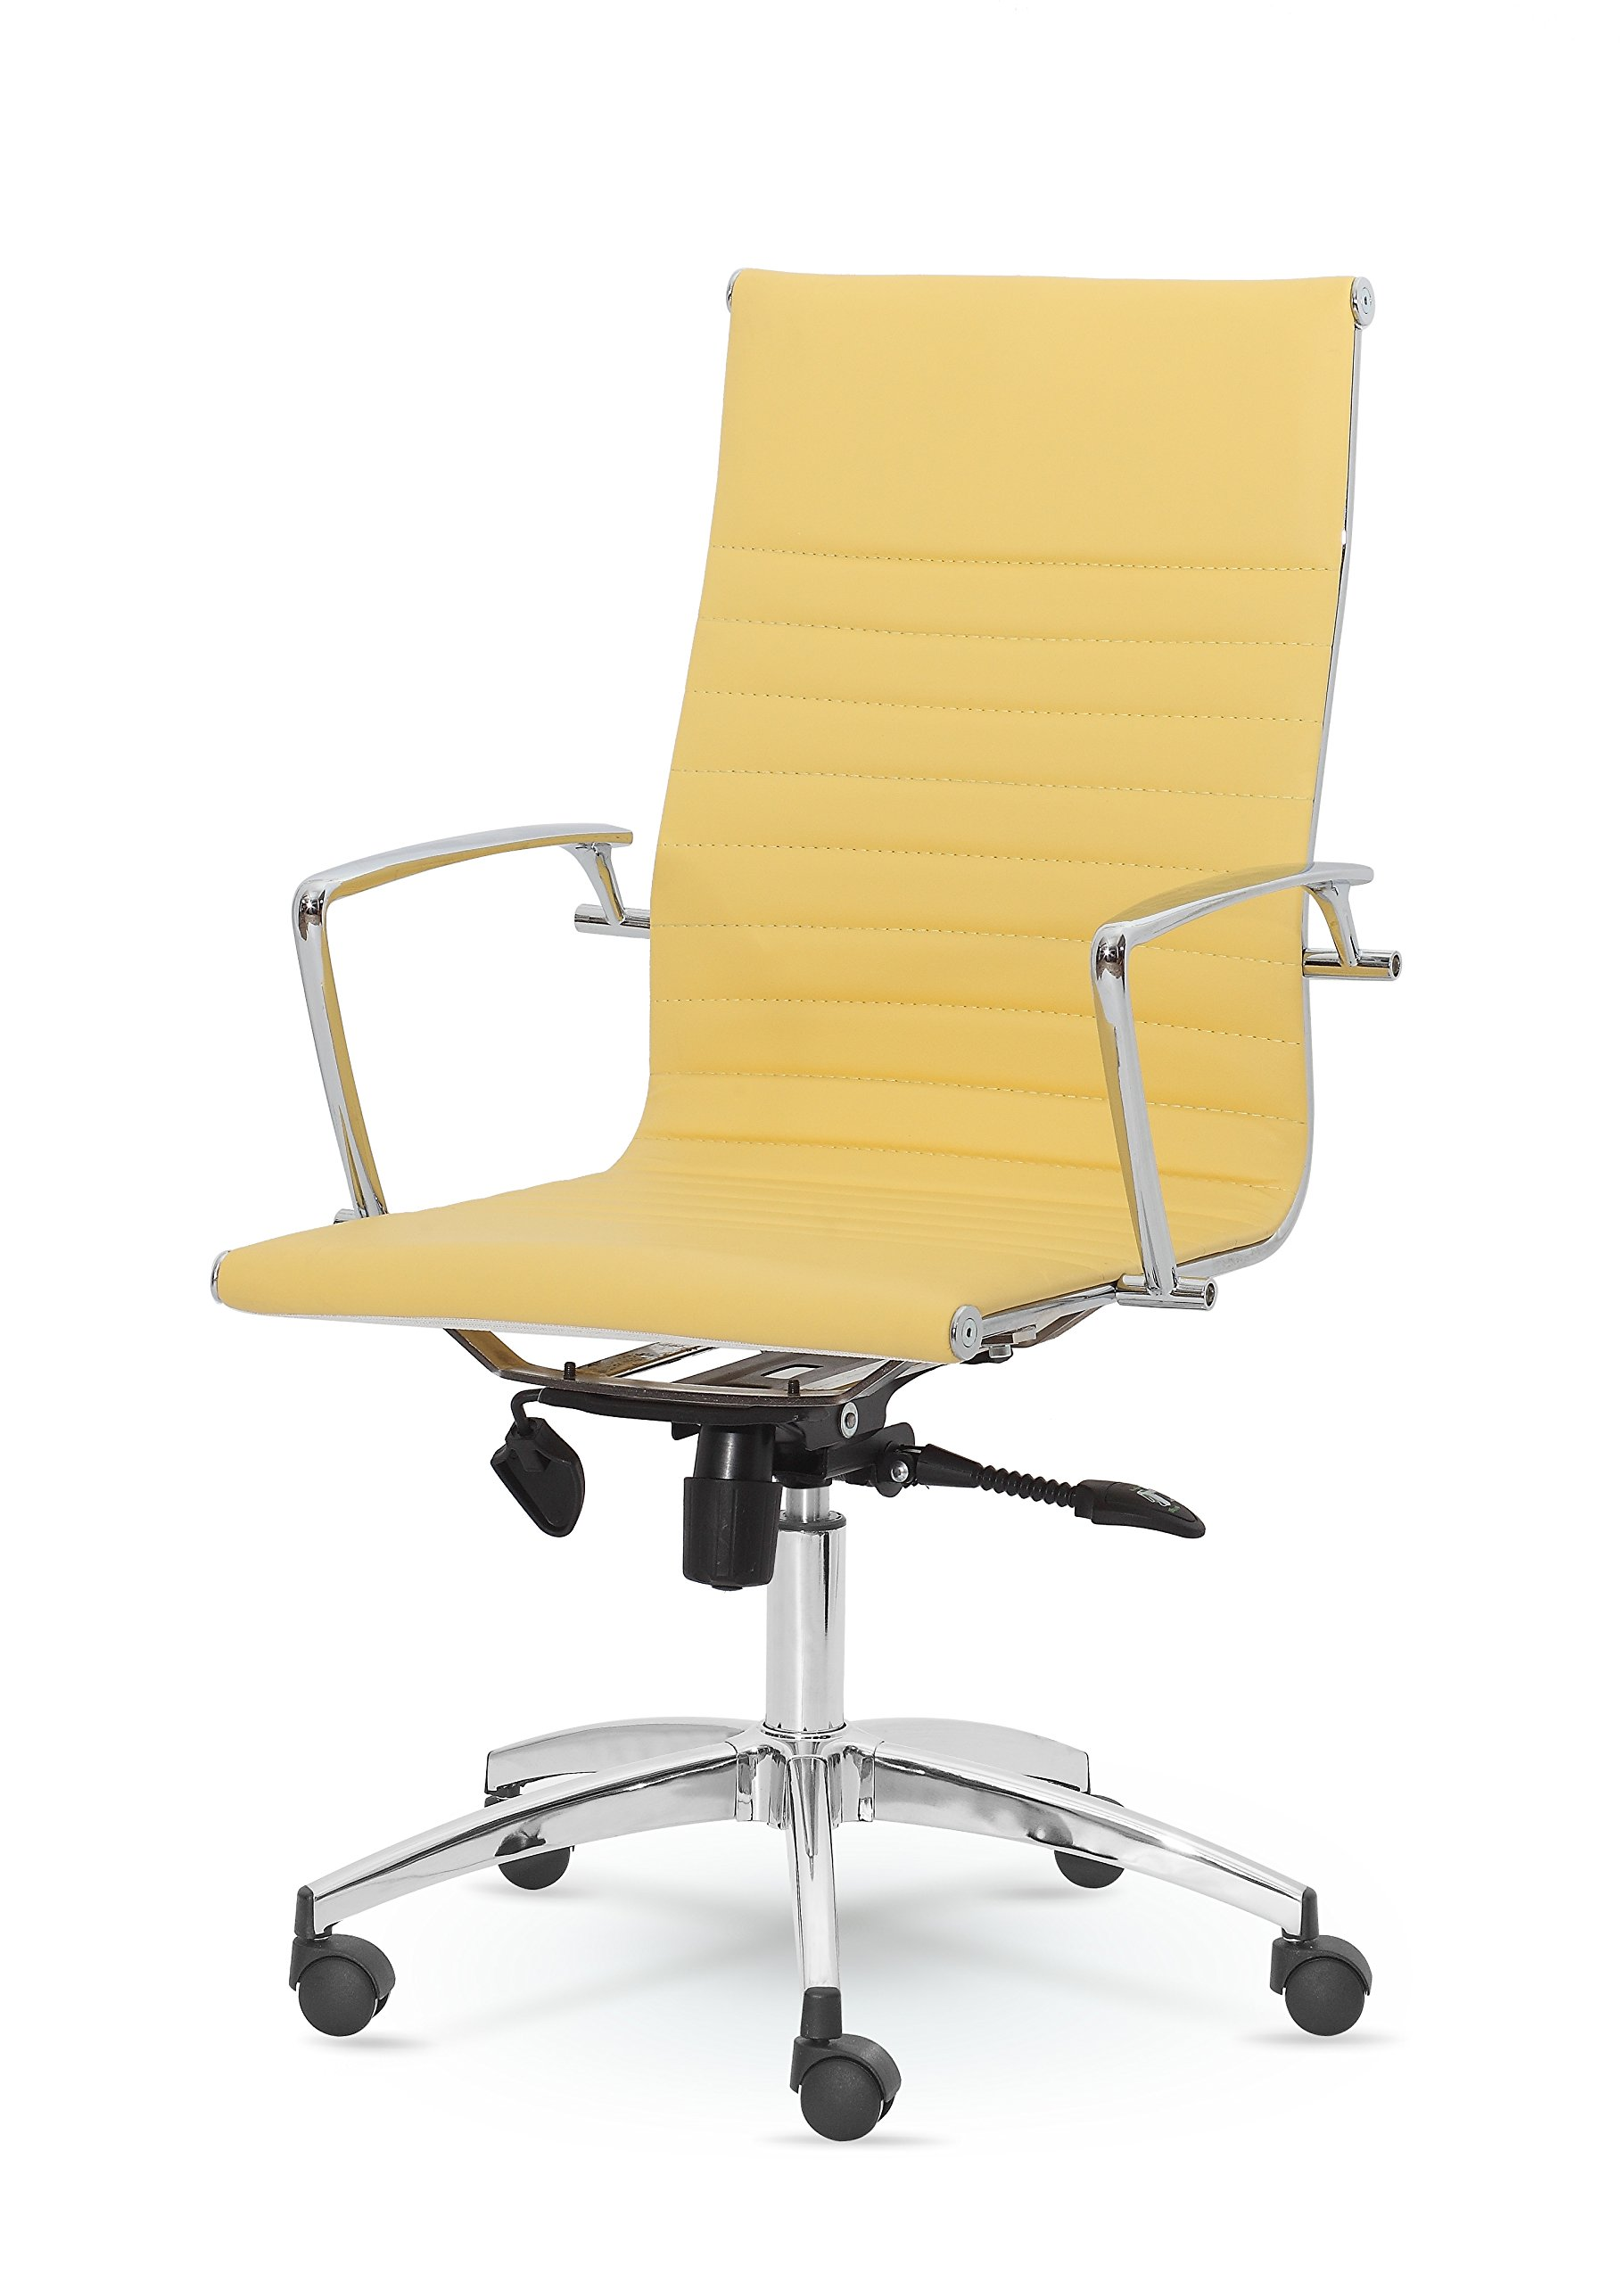 DYNAMIC HIGH-BACK LEATHER EXECUTIVE SWIVEL OFFICE DESK HOME CHAIR MZN-9711 (YELLOW)